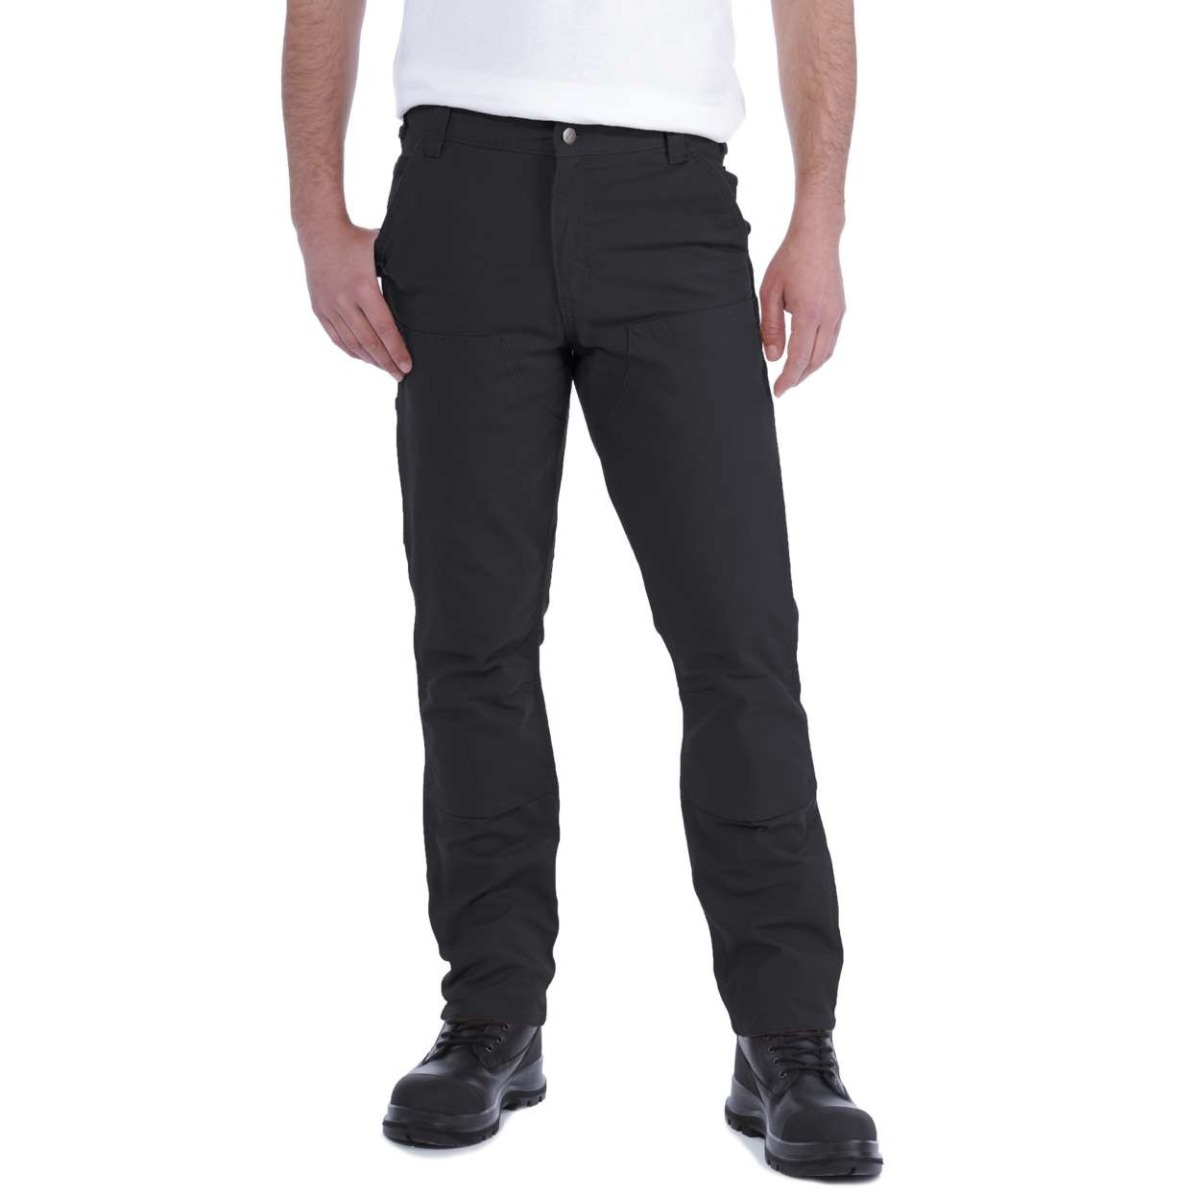 Carhartt Stretch Duck Double Front Trousers, Black, W32/L34